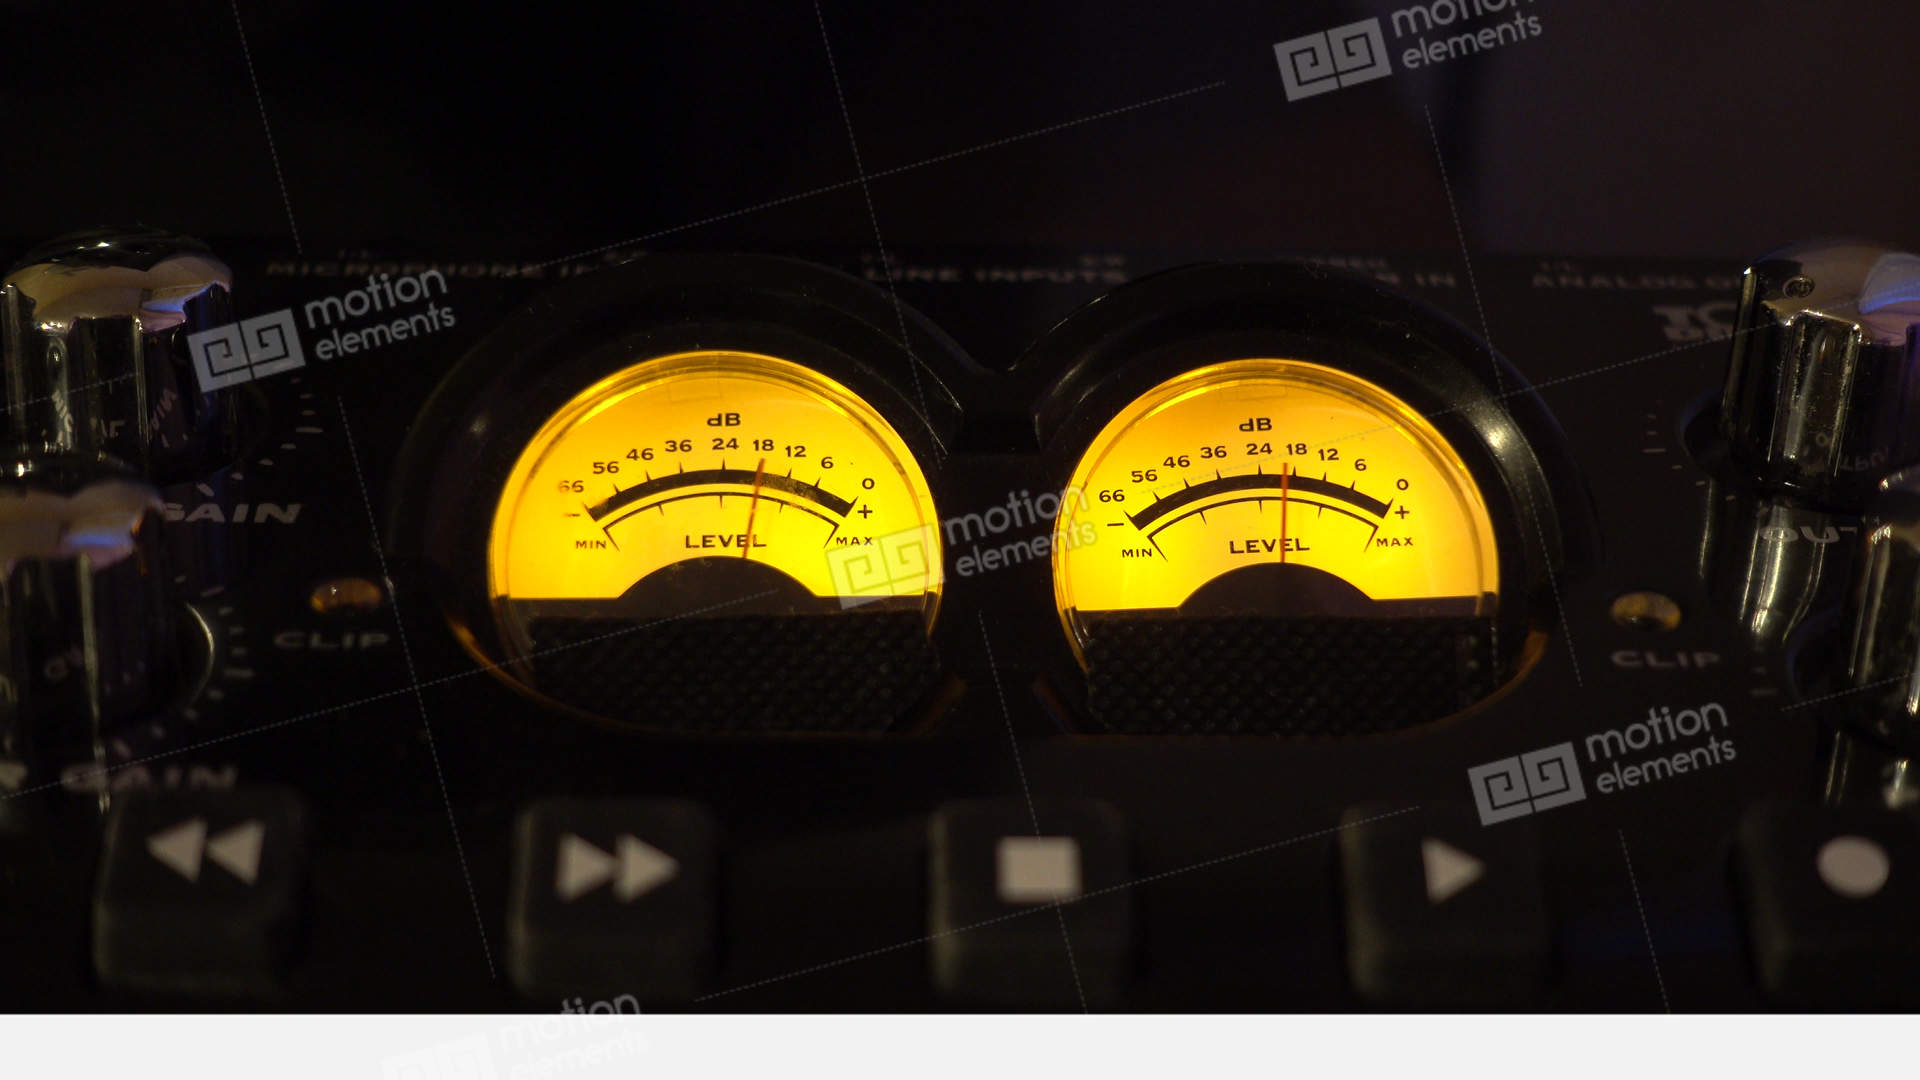 Audio Meters Music Studio Background Video Stock video footage ... on scotland screensavers and wallpaper, audio wave wallpaper, butterfly screensavers and wallpaper,